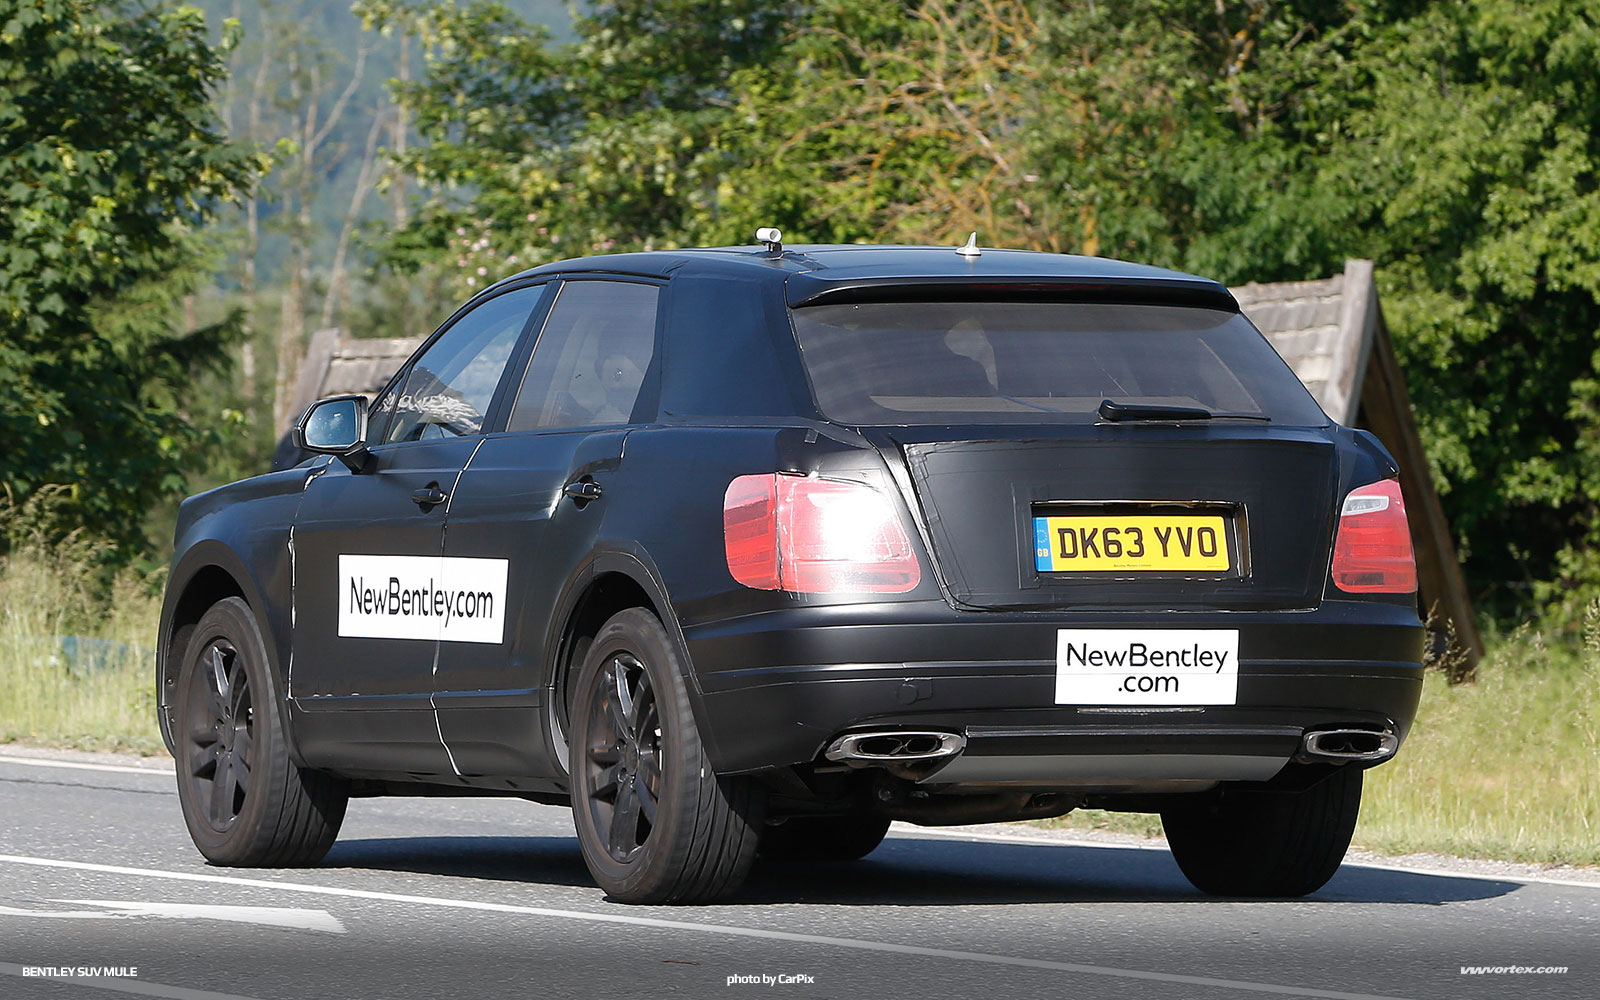 bentley-suv-mule-spy-photos-371